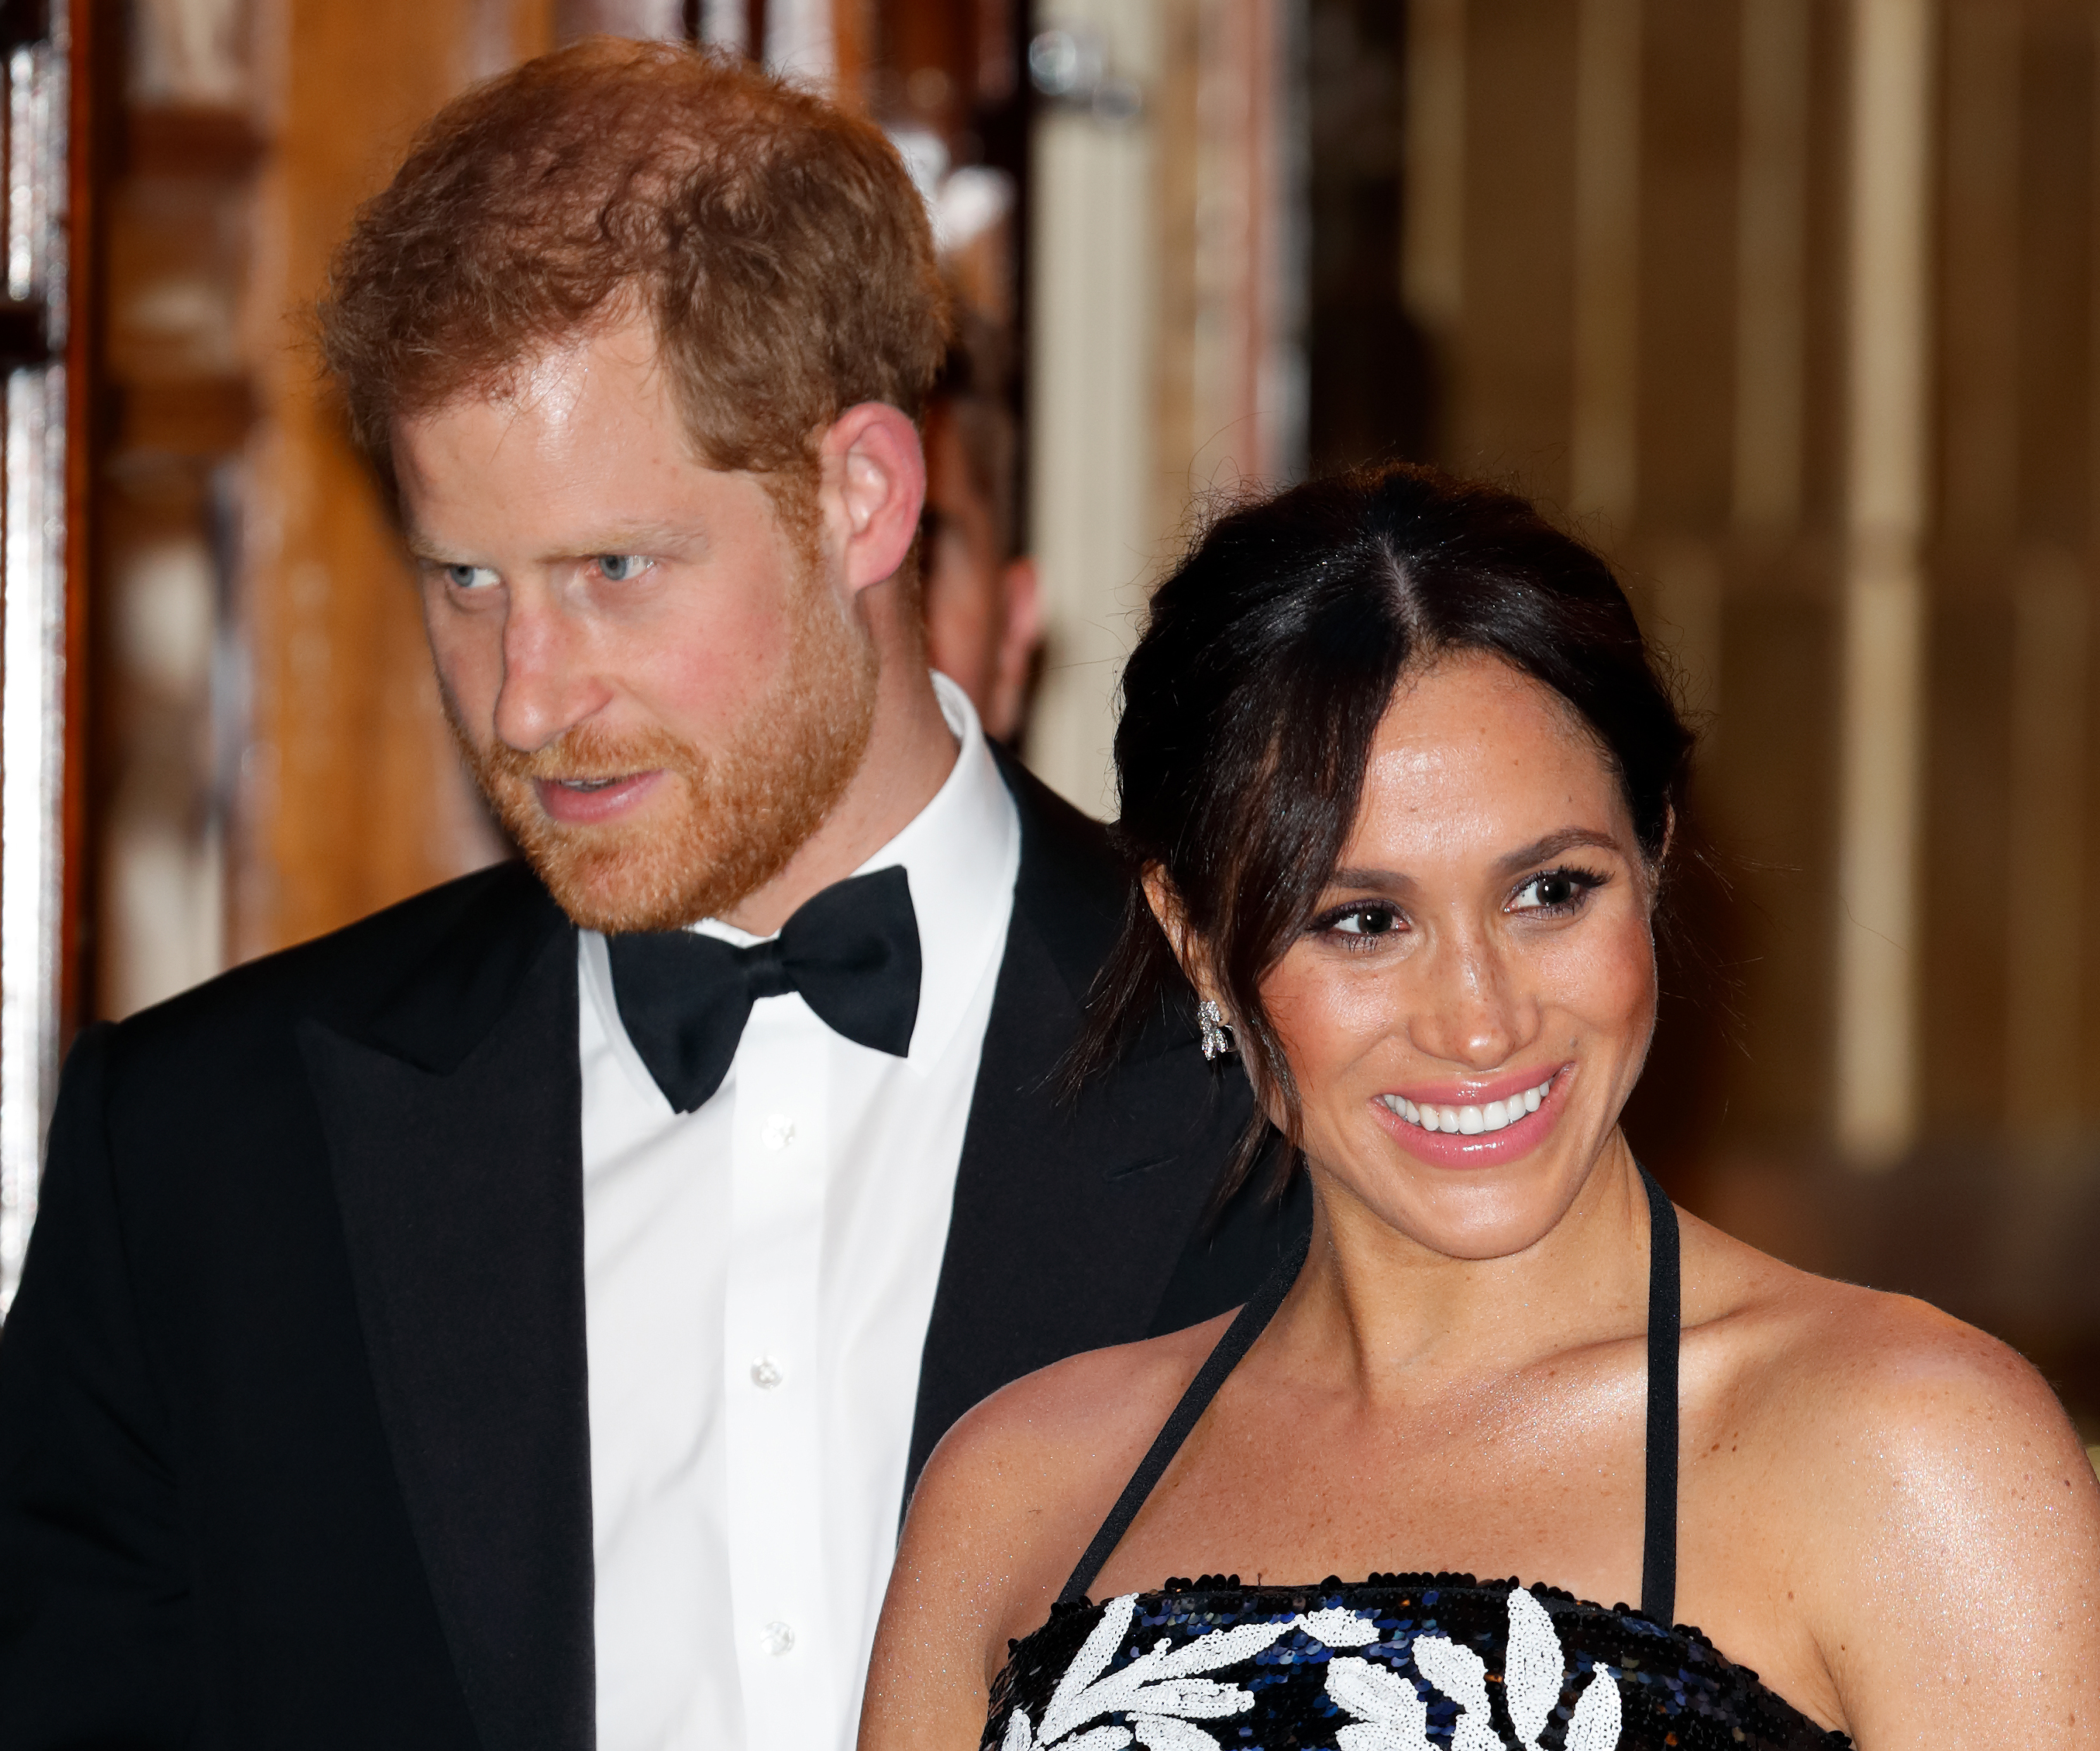 Why Prince Harry and Meghan Markle Are Moving Out of Kensington Palace